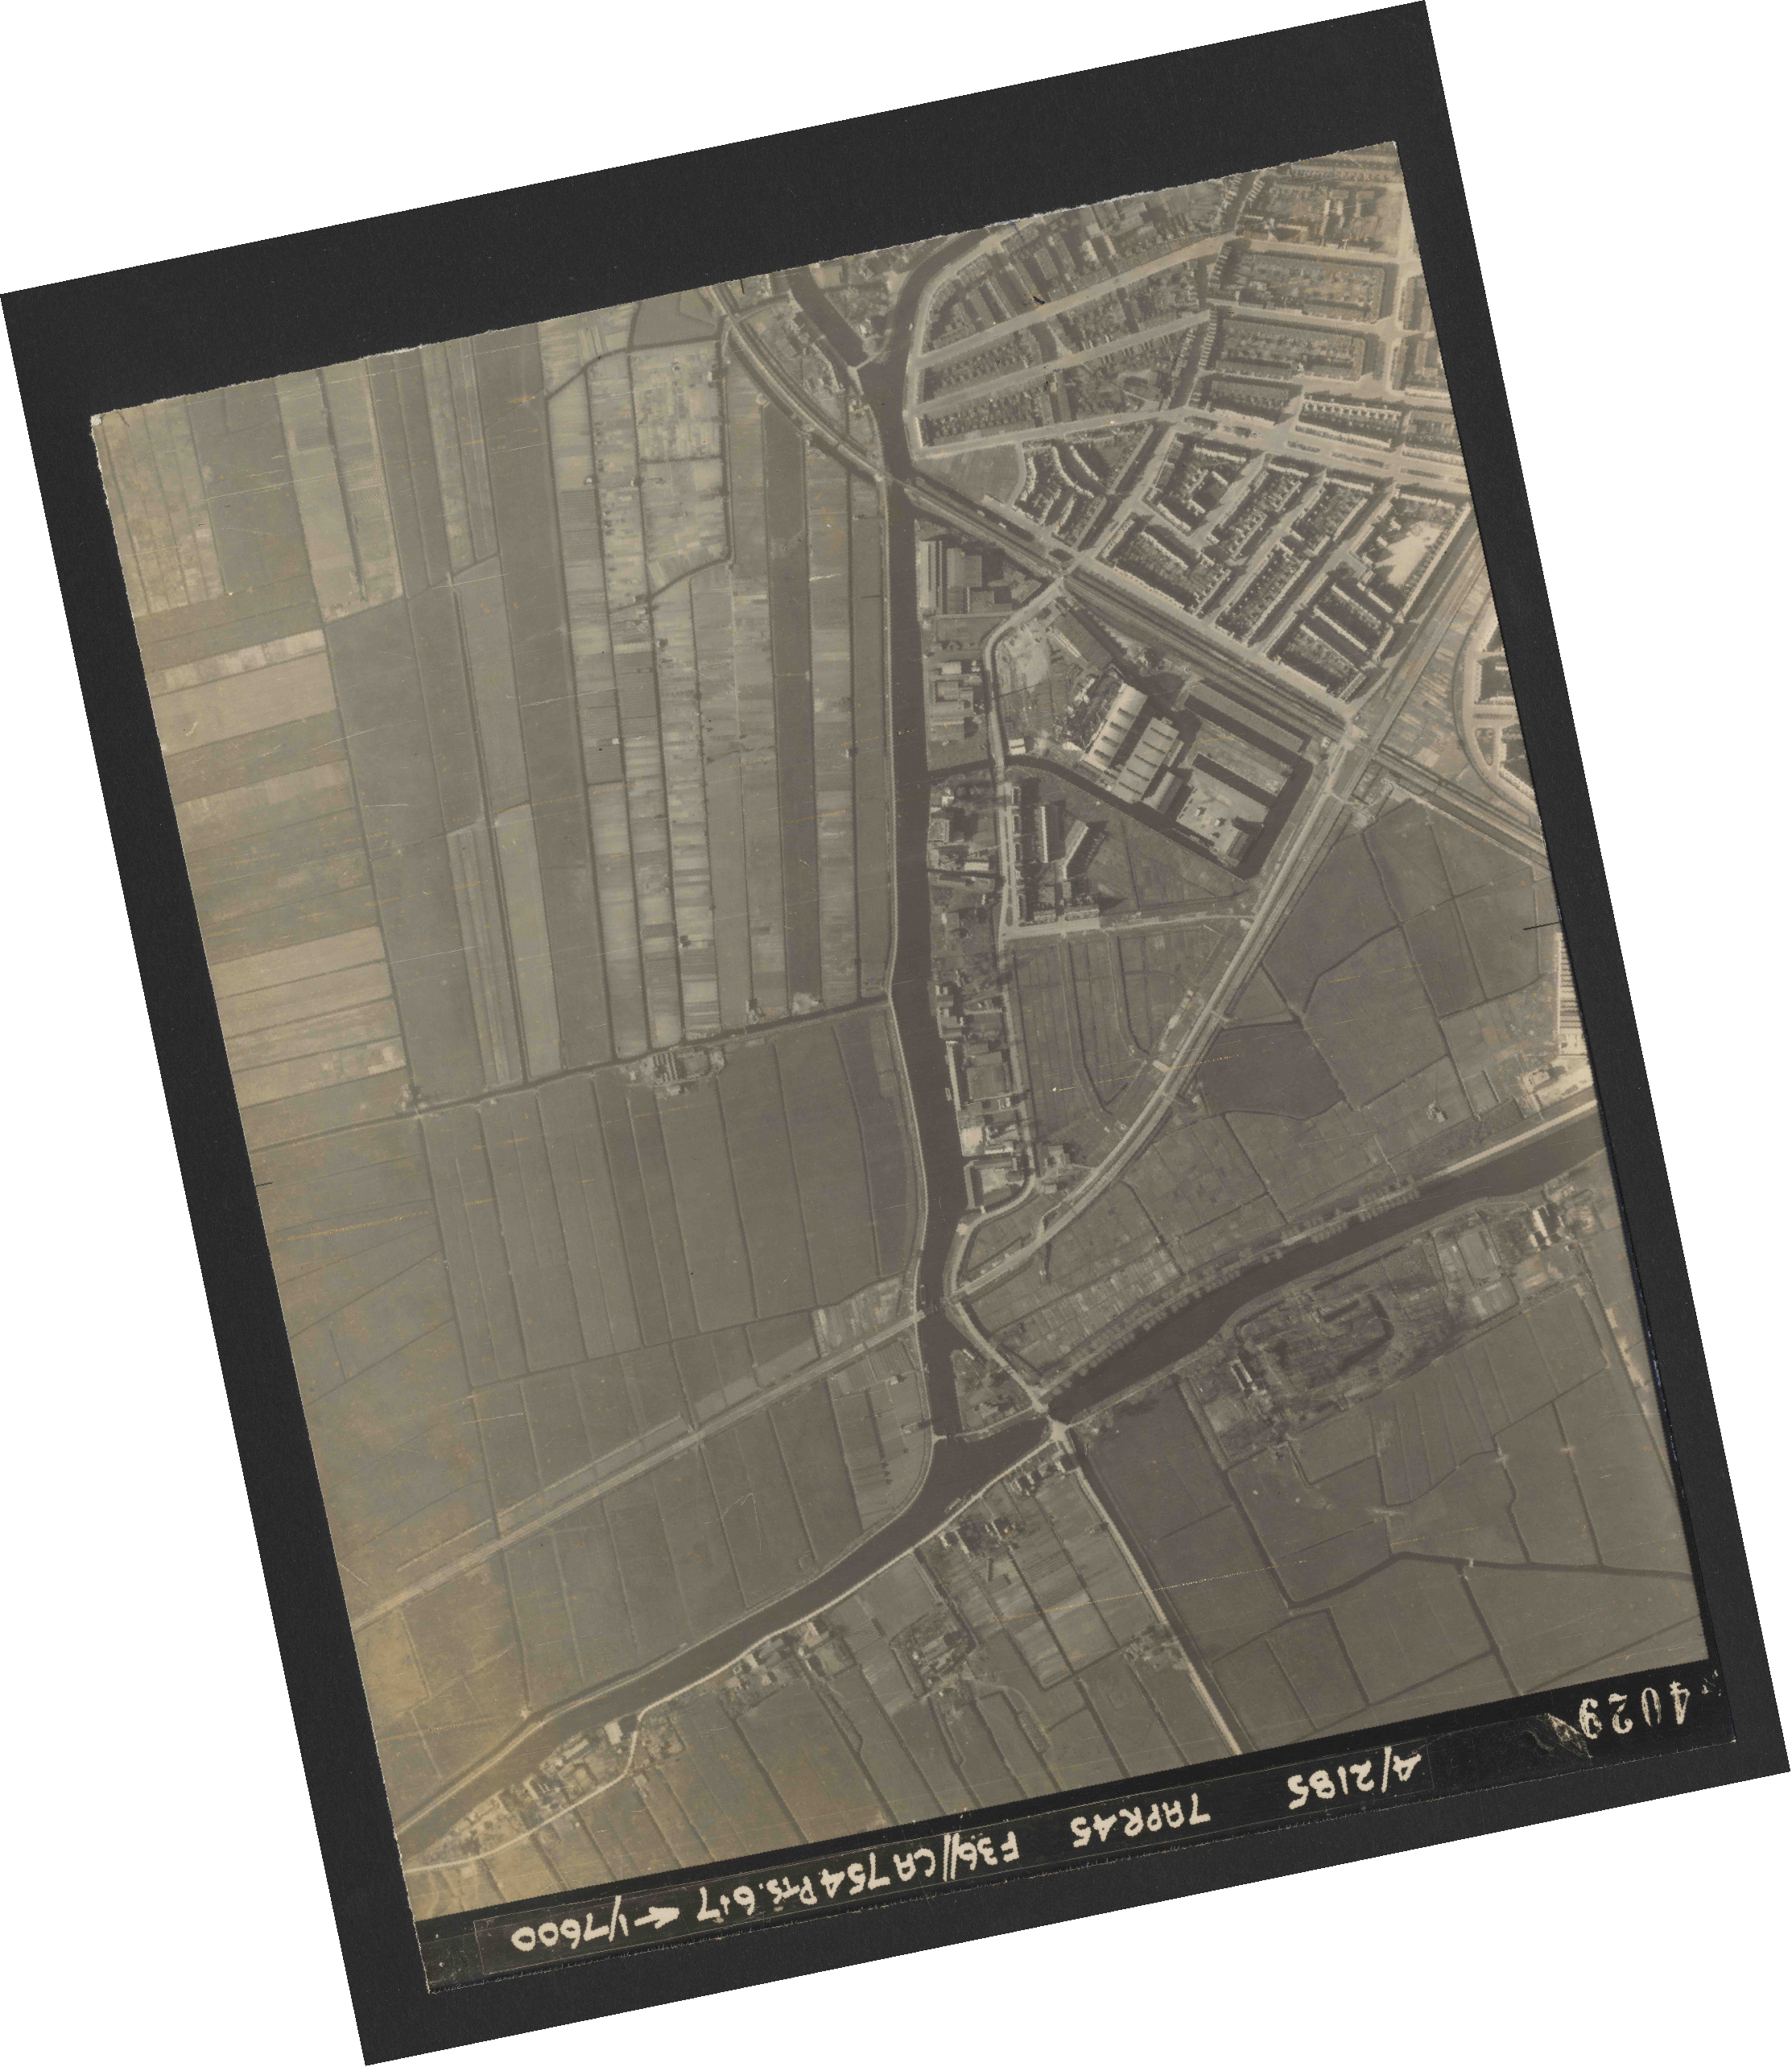 Collection RAF aerial photos 1940-1945 - flight 303, run 04, photo 4029